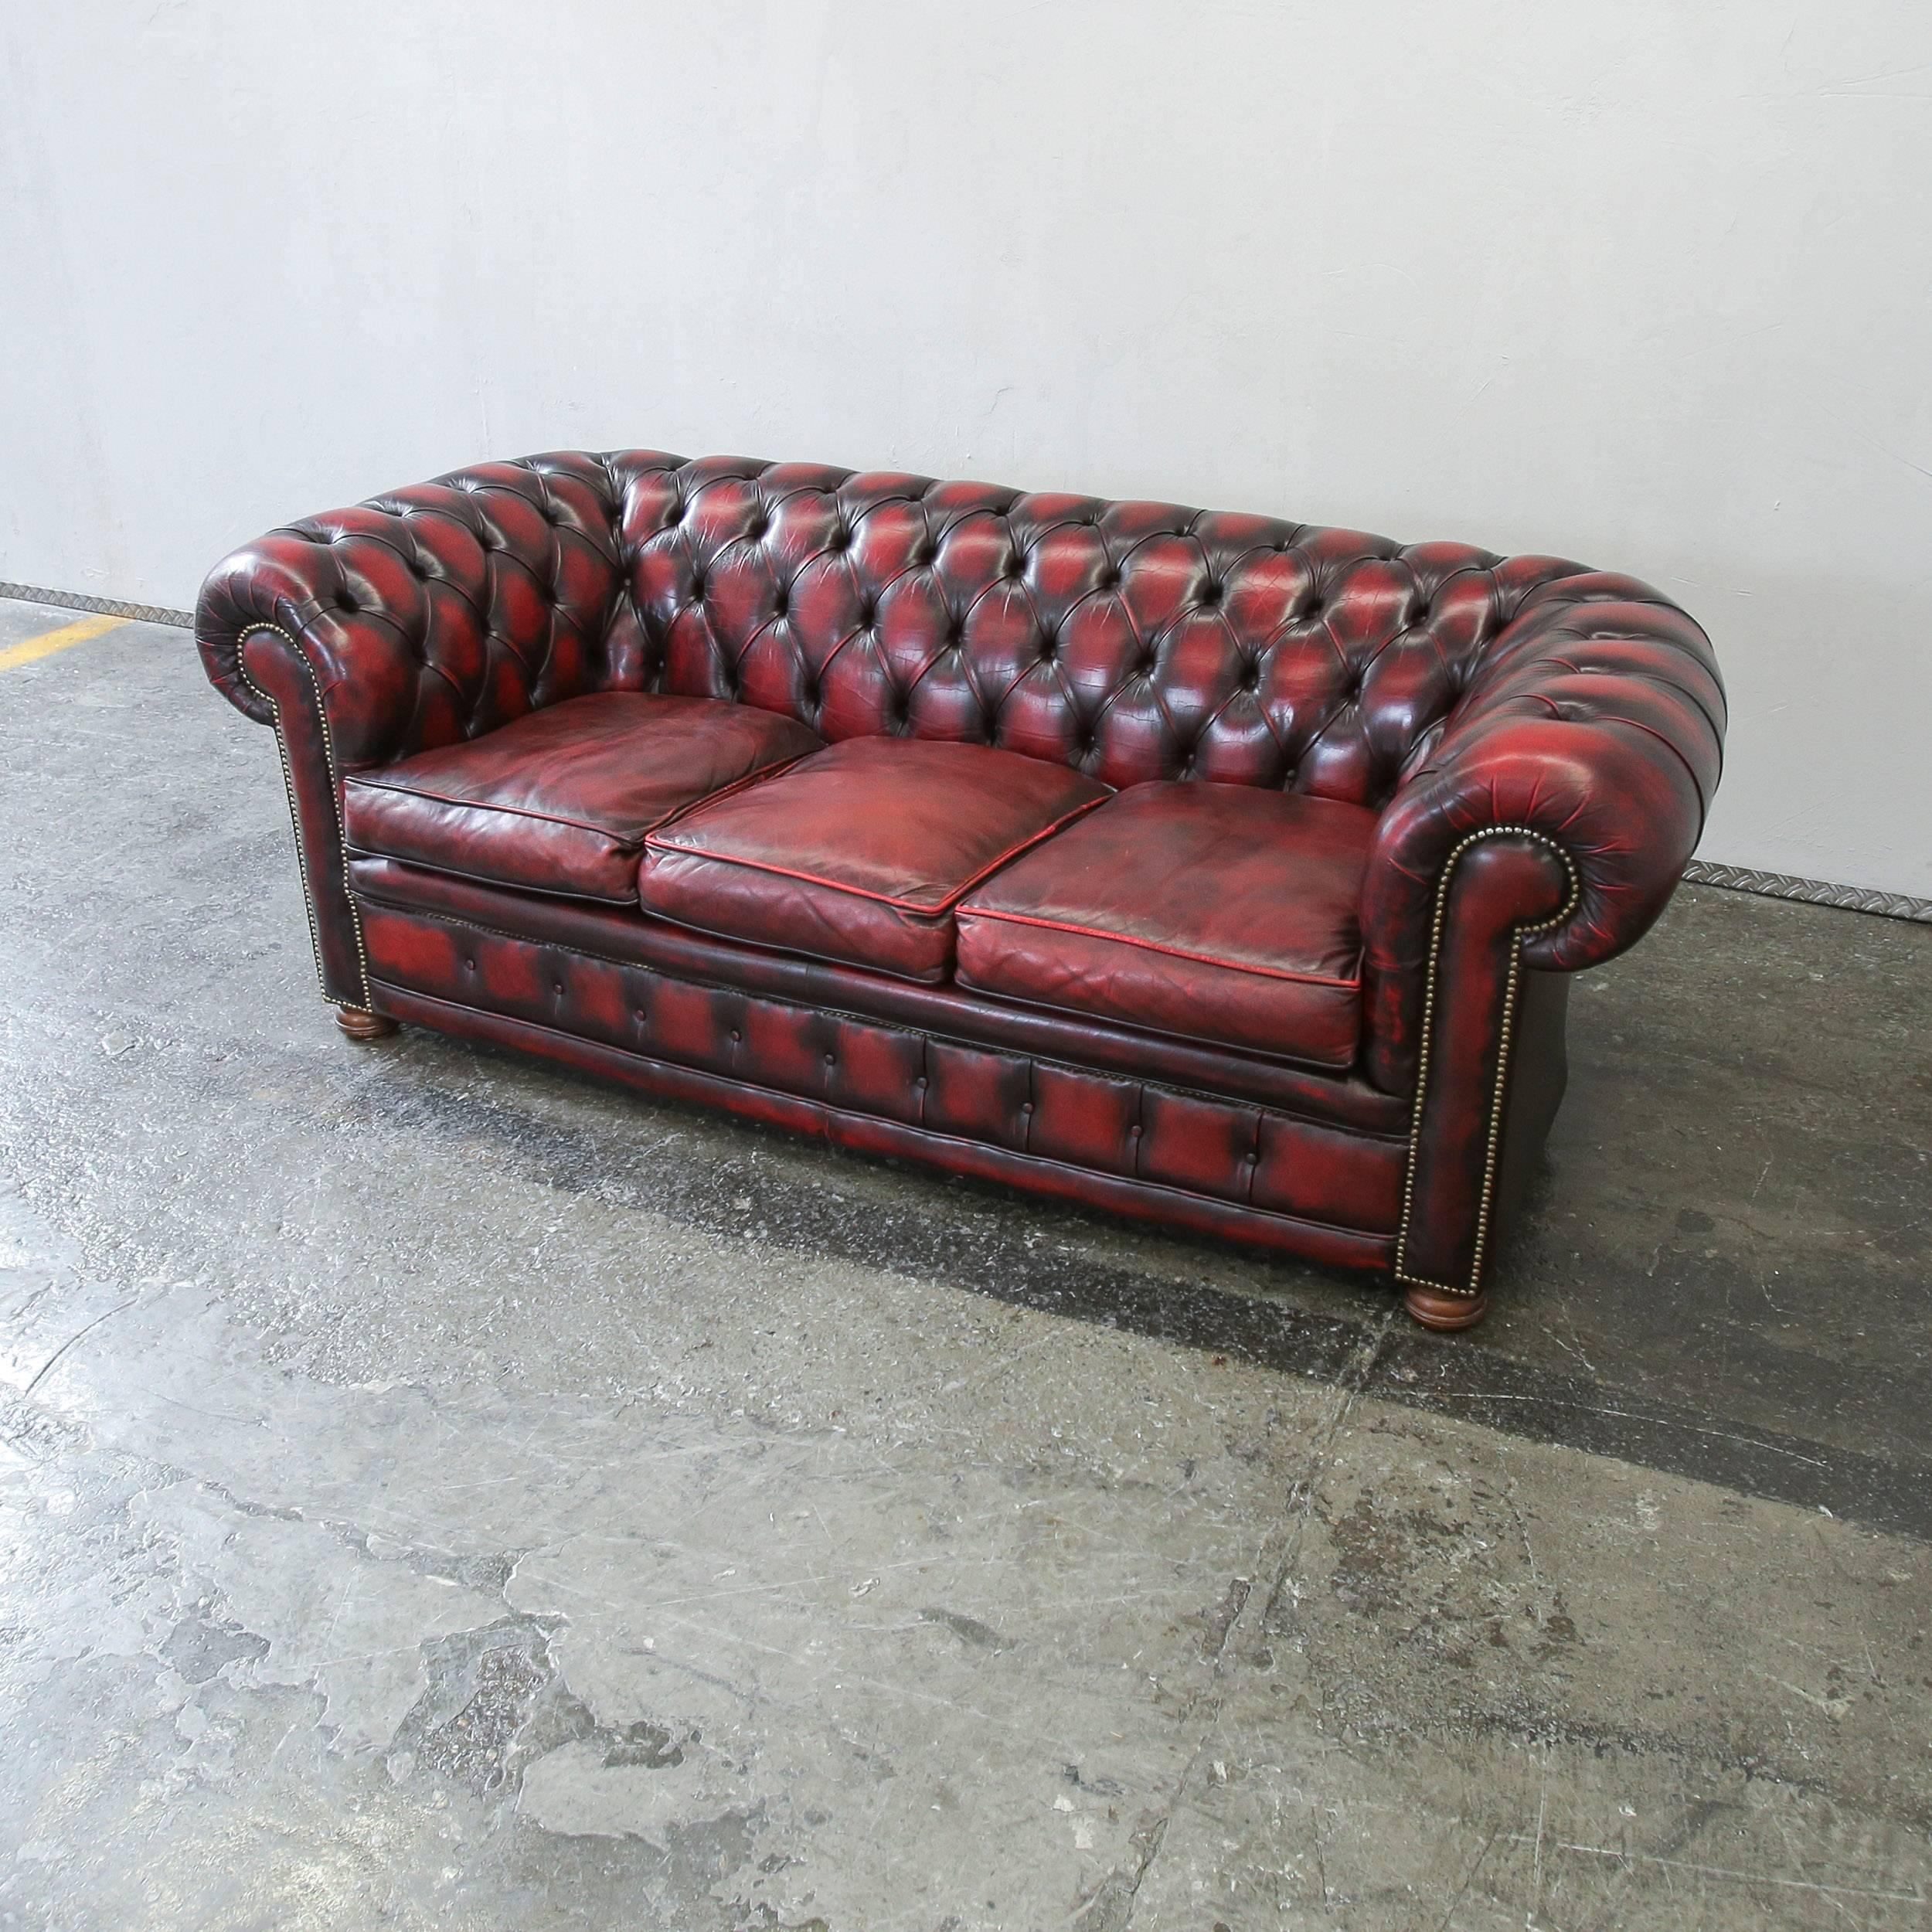 Awesome Fabulous Elegant Leather Sofa In A Vibrant Oxblood Red Color And A  Vintage Style Designed With Vintage Sofa Leder With Retro Sofa Grau